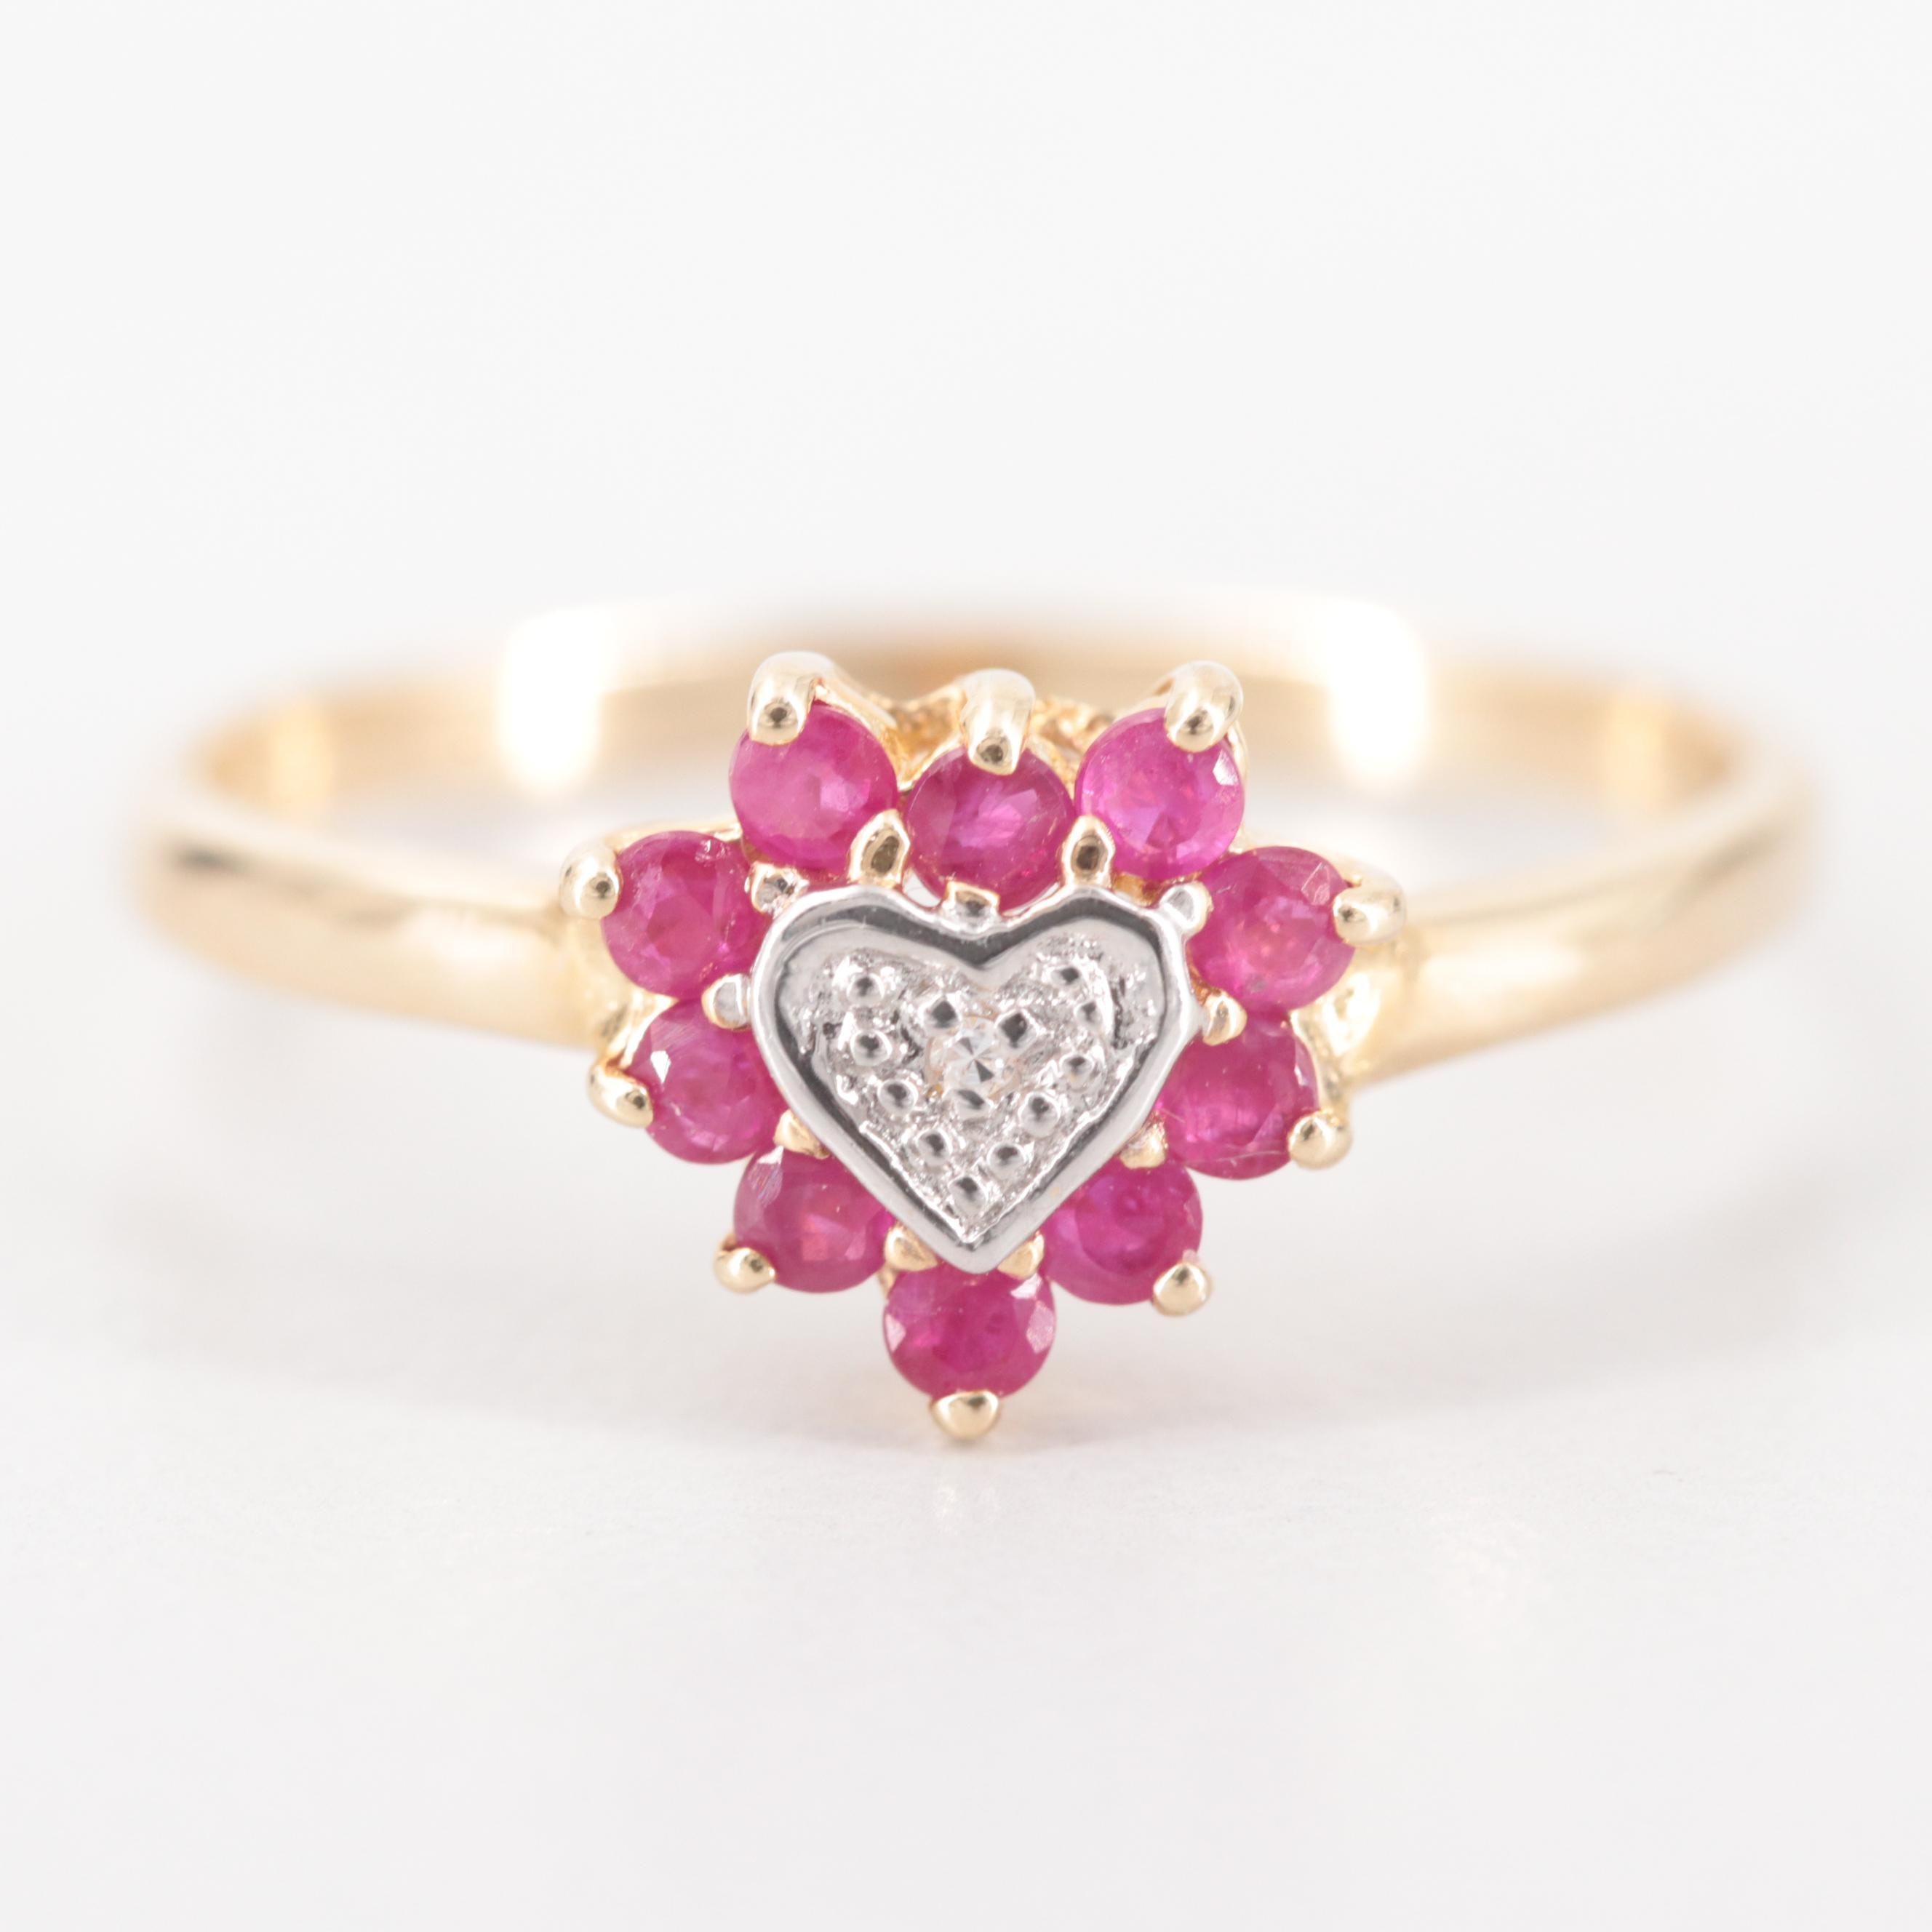 10K Yellow Gold Diamond and Ruby Heart Ring